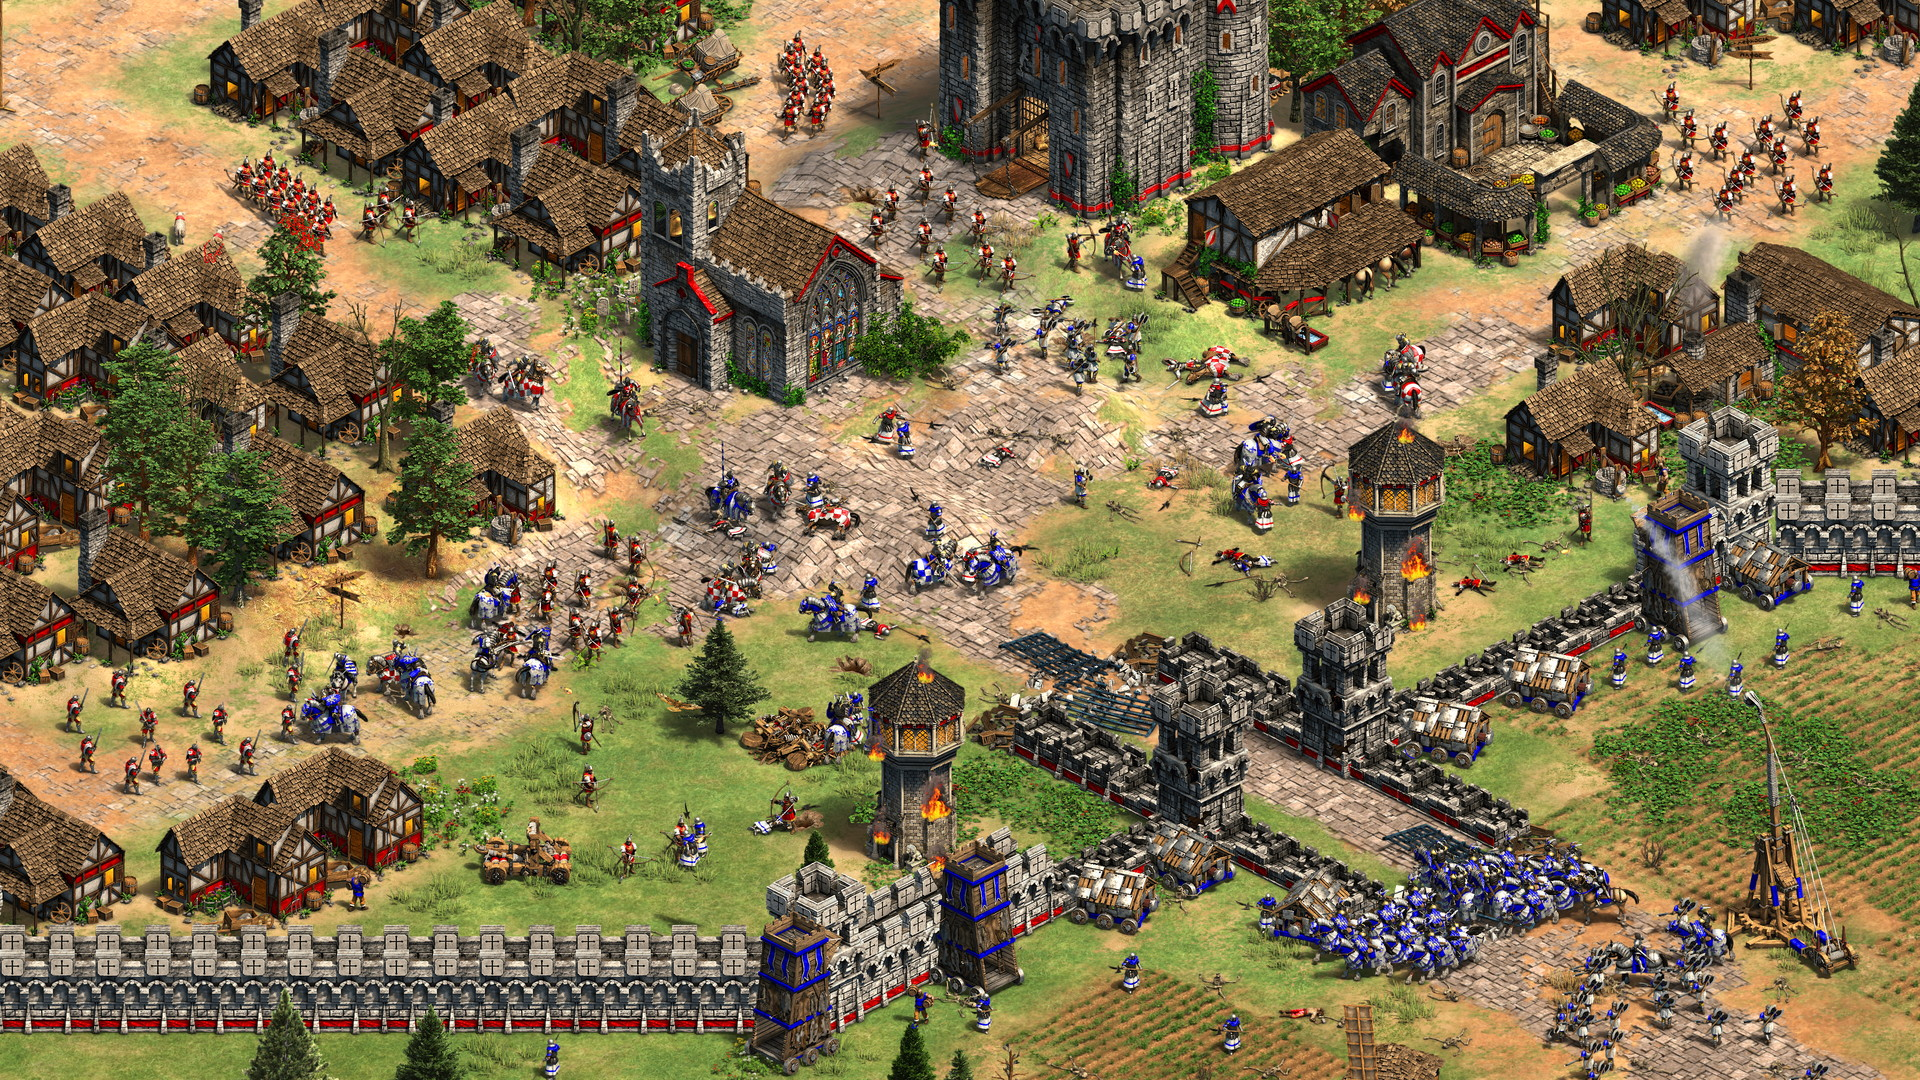 Age of Empires II: Definitive Edition - screenshot 11